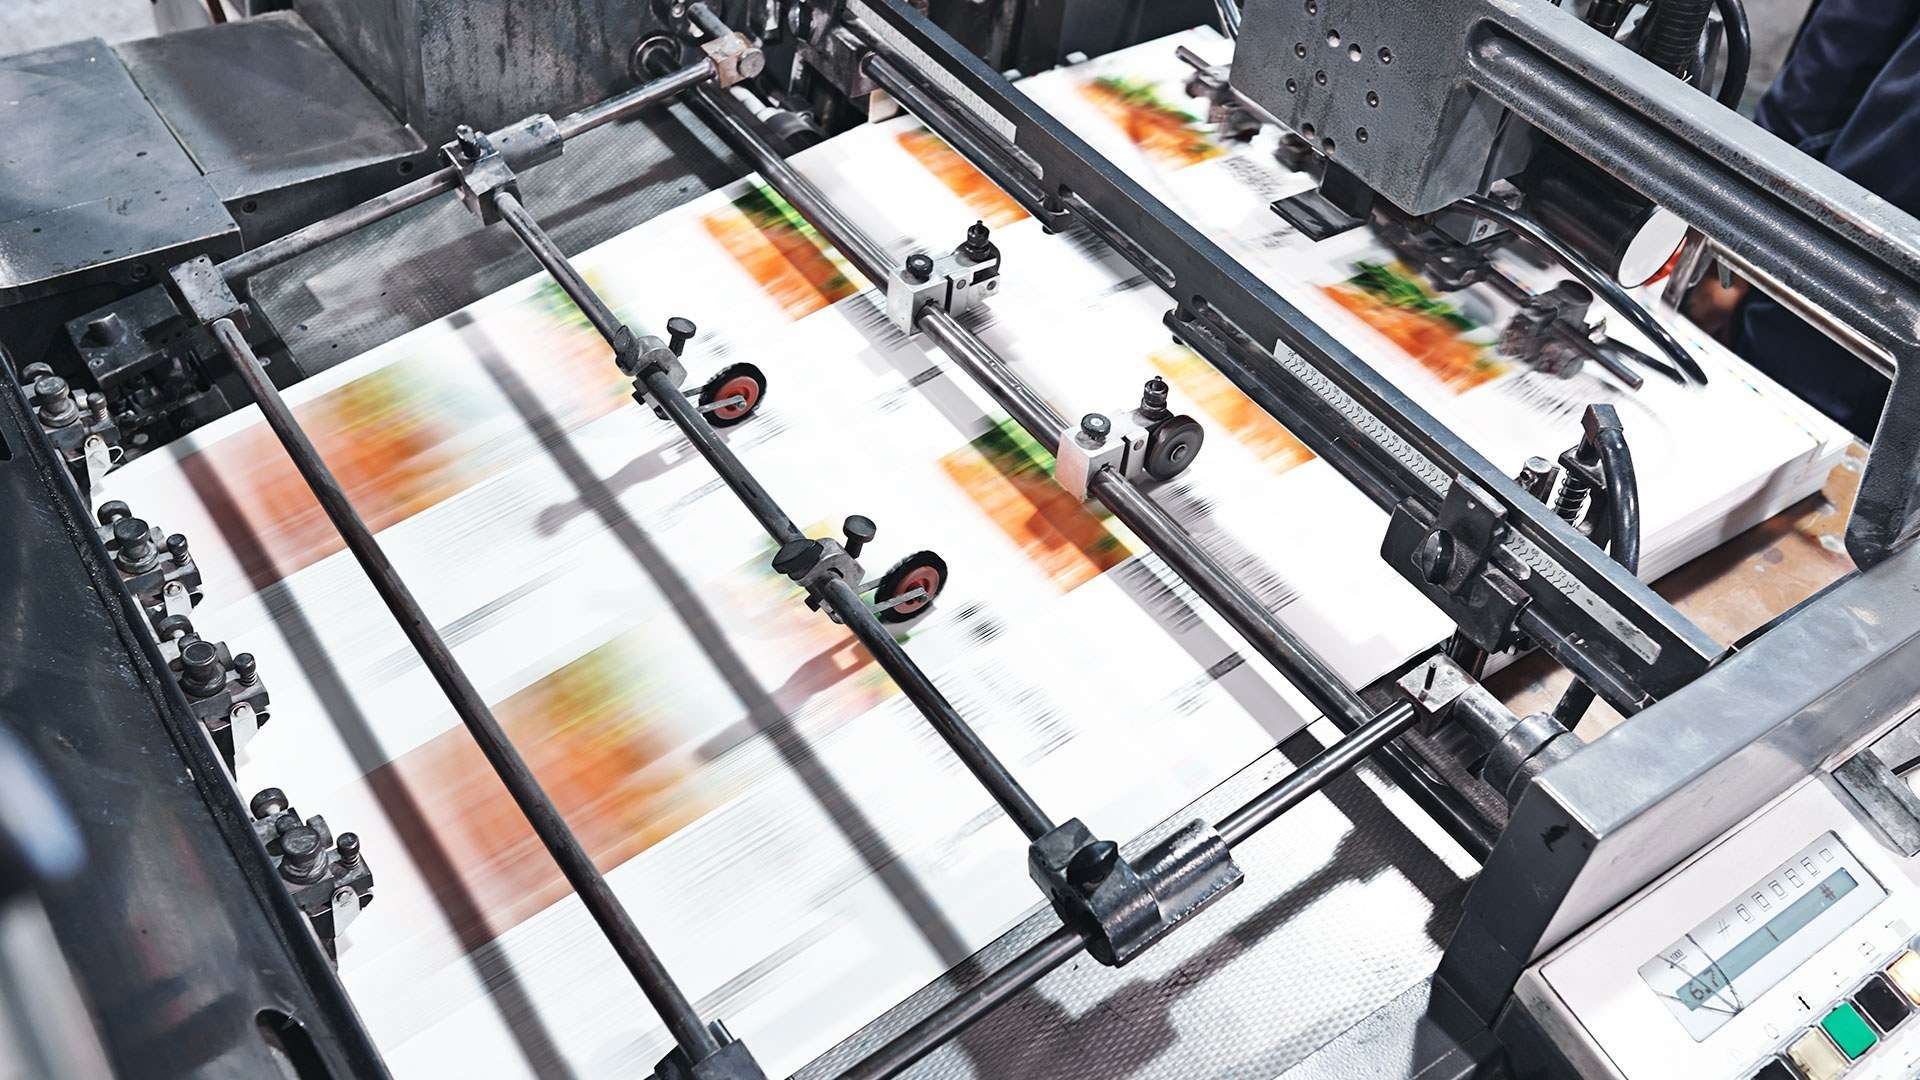 A photo of food packaging being printed